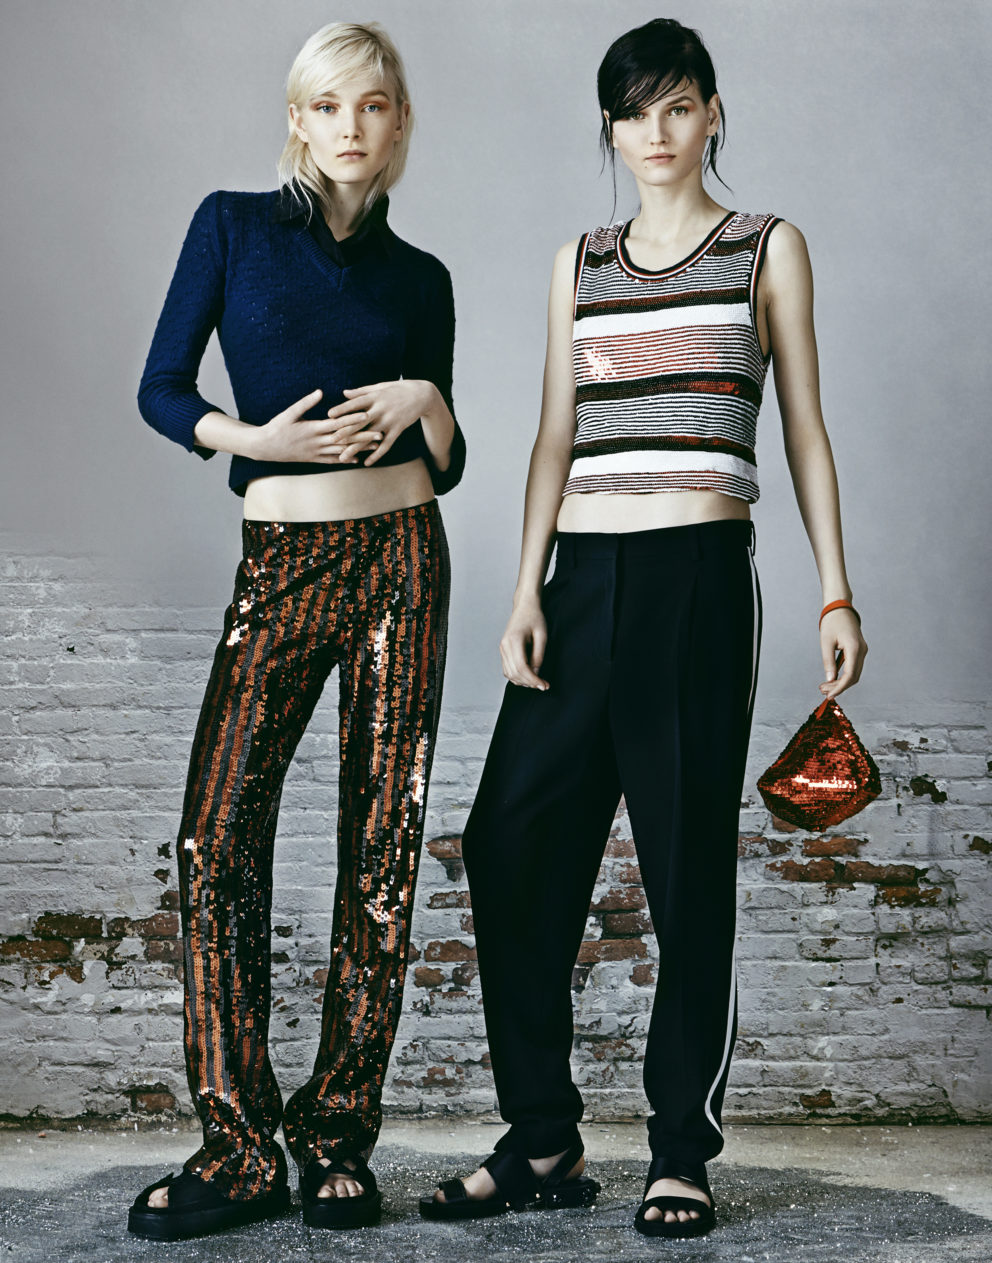 140129 Vogue Sequin Twins Christian Hogstedt 01